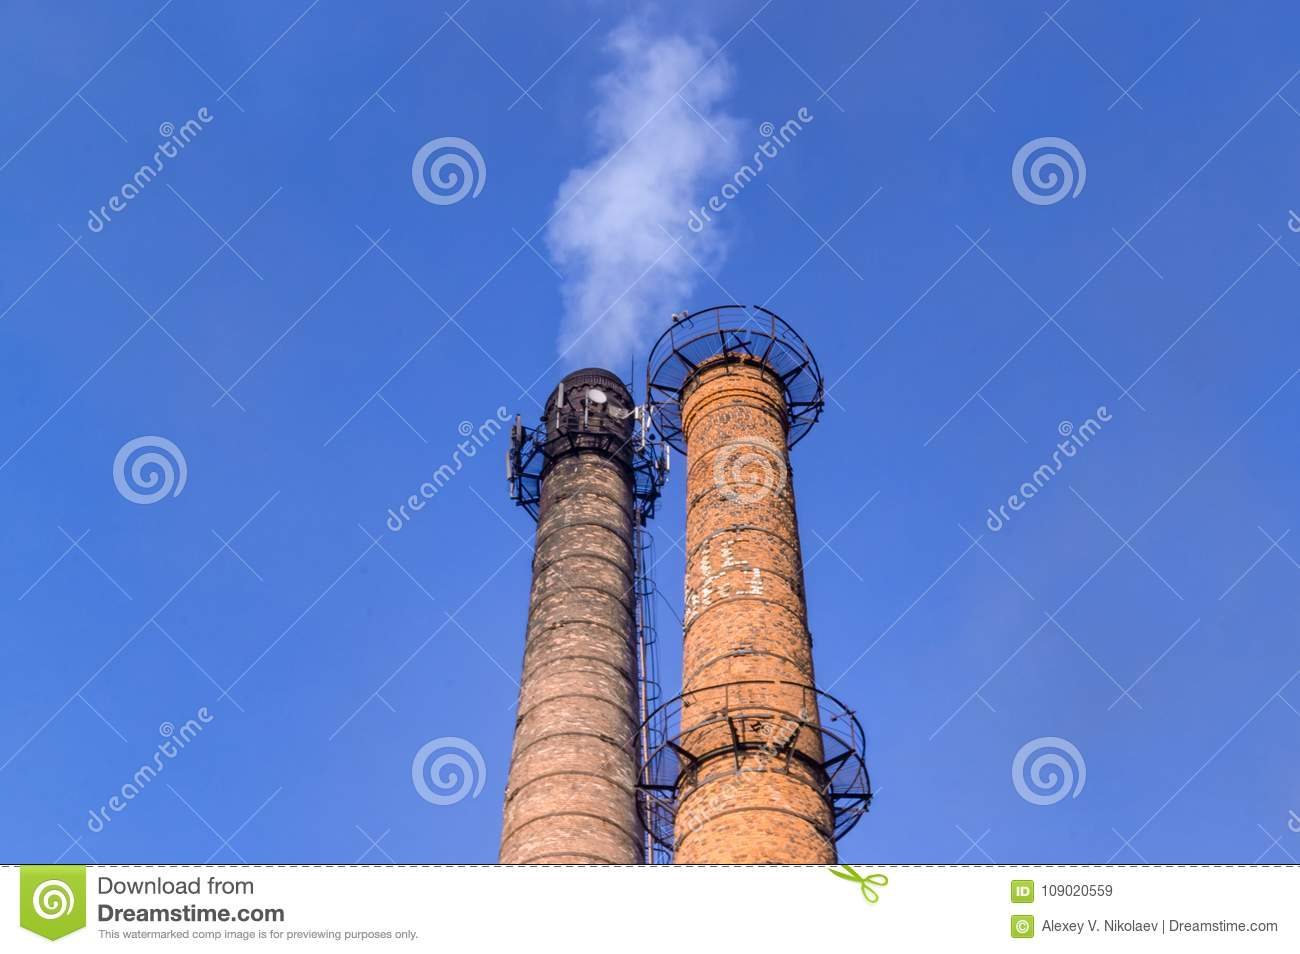 Brick smoke stack 3 stock image  Image of engineer, idle - 109020559